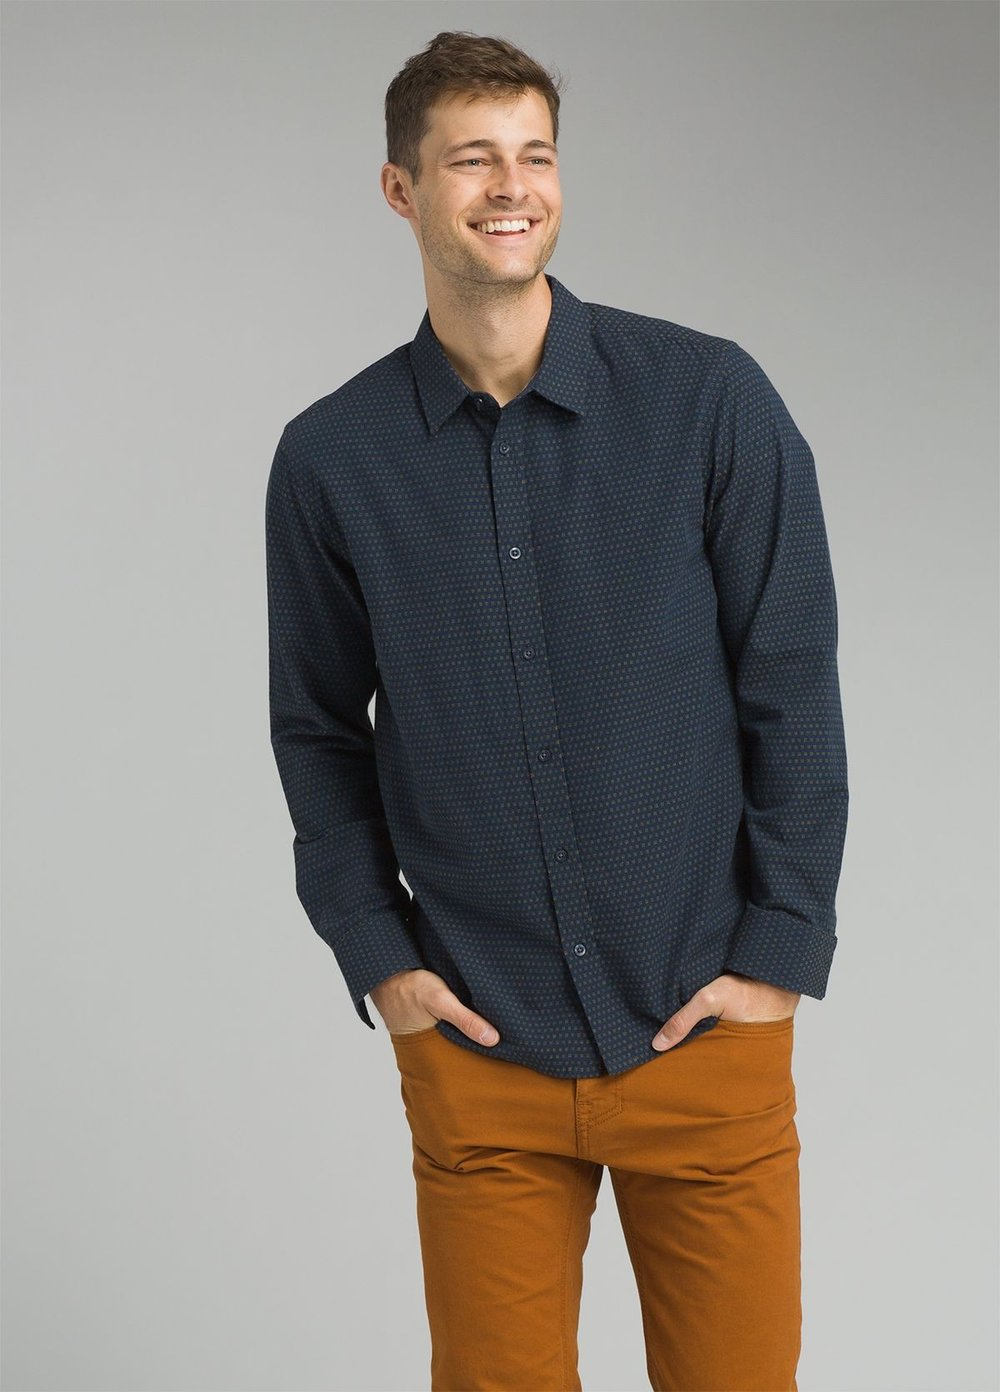 Prana  men's breathable fair trade button down shirts. Convenient front pocket for lens caps. Prana has a huge selection (and they're good for the environment).